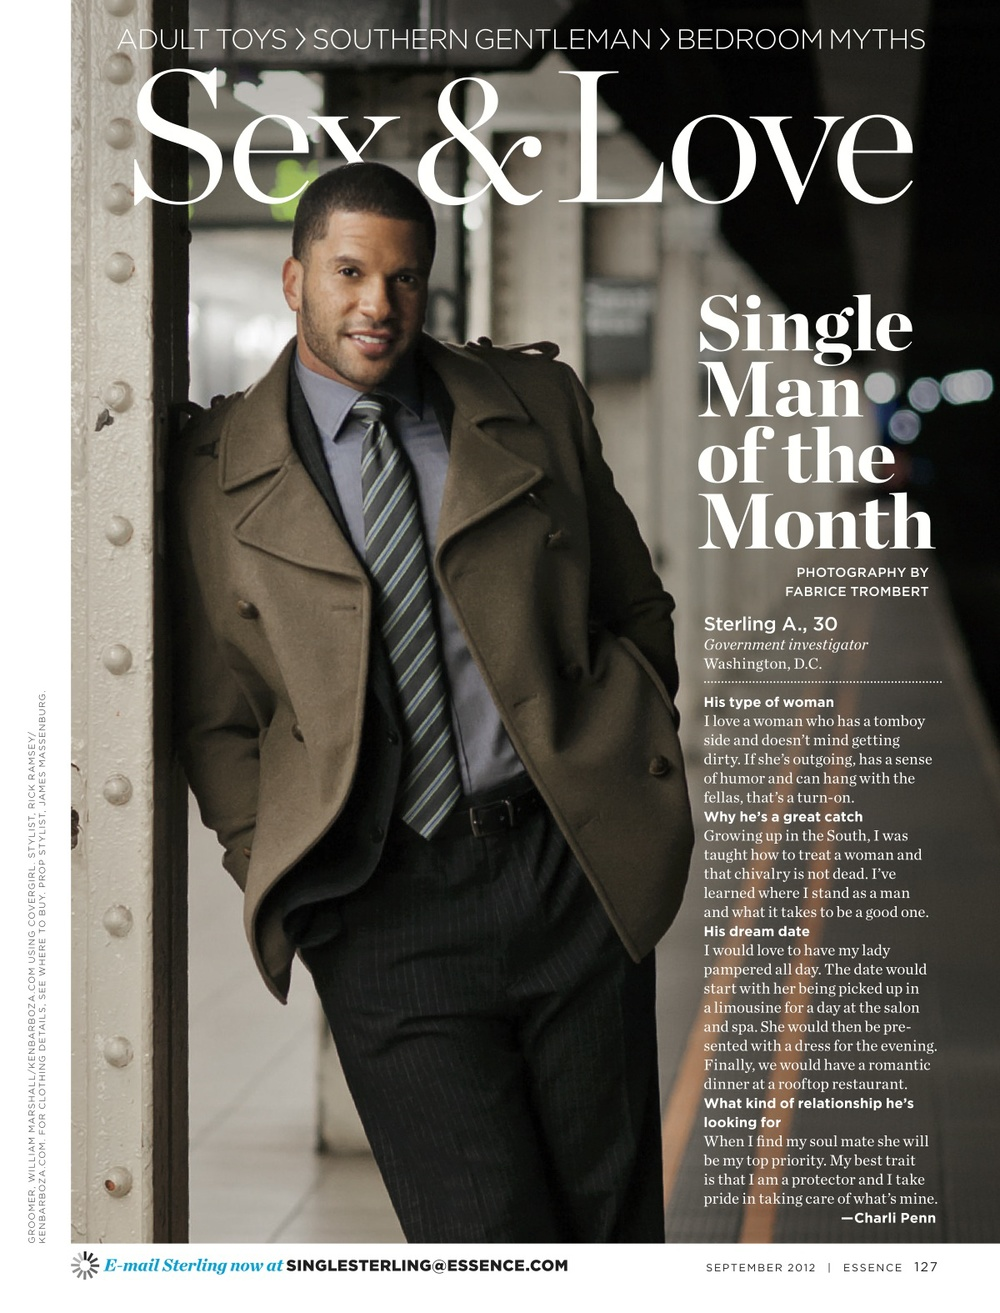 Single Man Of the Month Sterling A, ESSENCE Sept. 2012